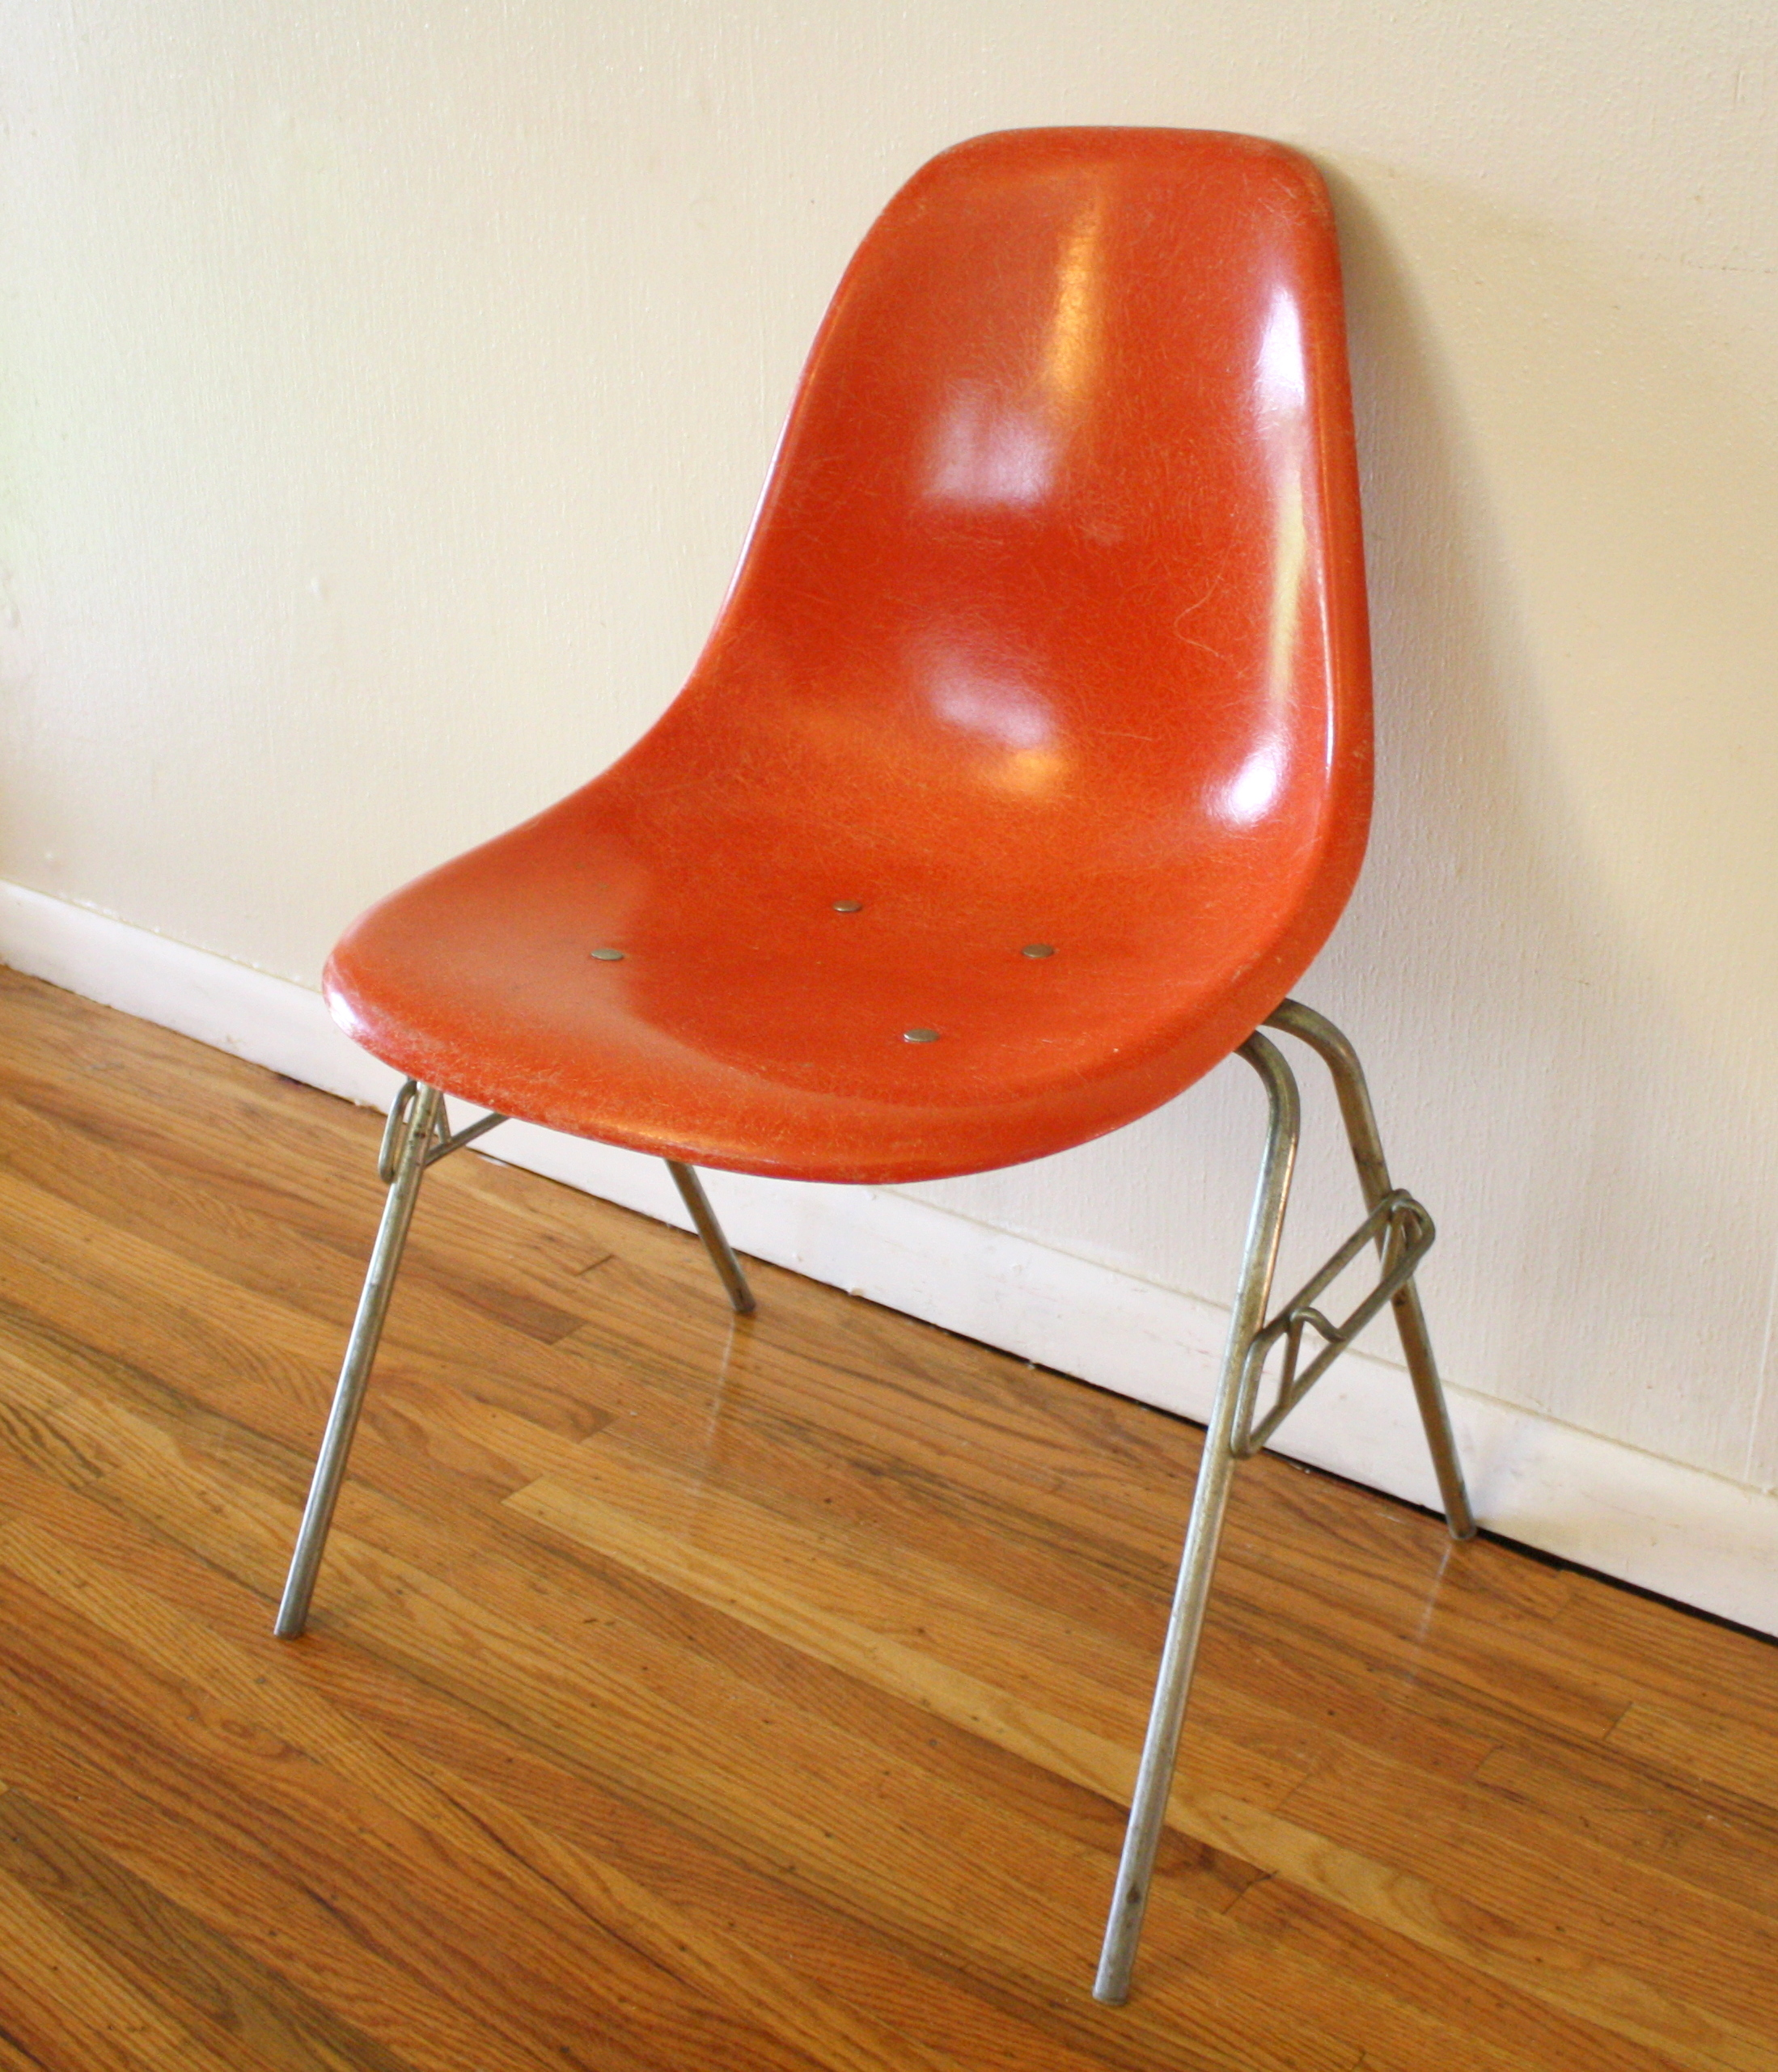 Herman Miller Orange Chair 4